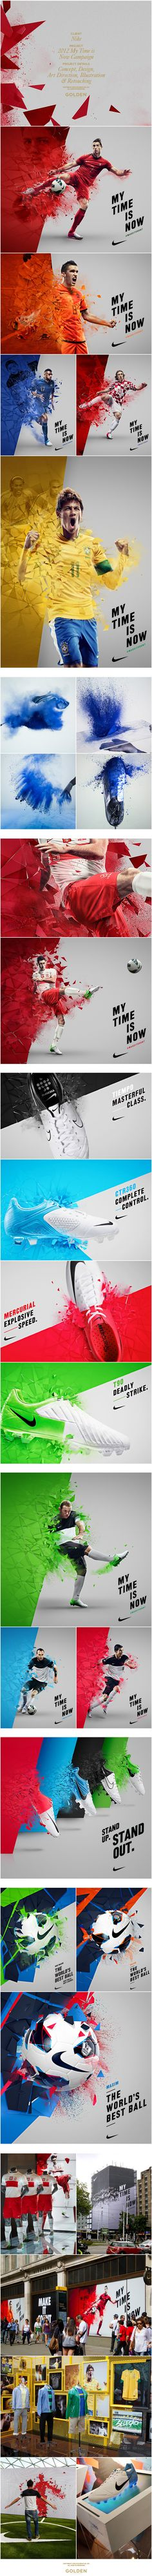 Nike 2012 My Time Is Now Campaign on Behance